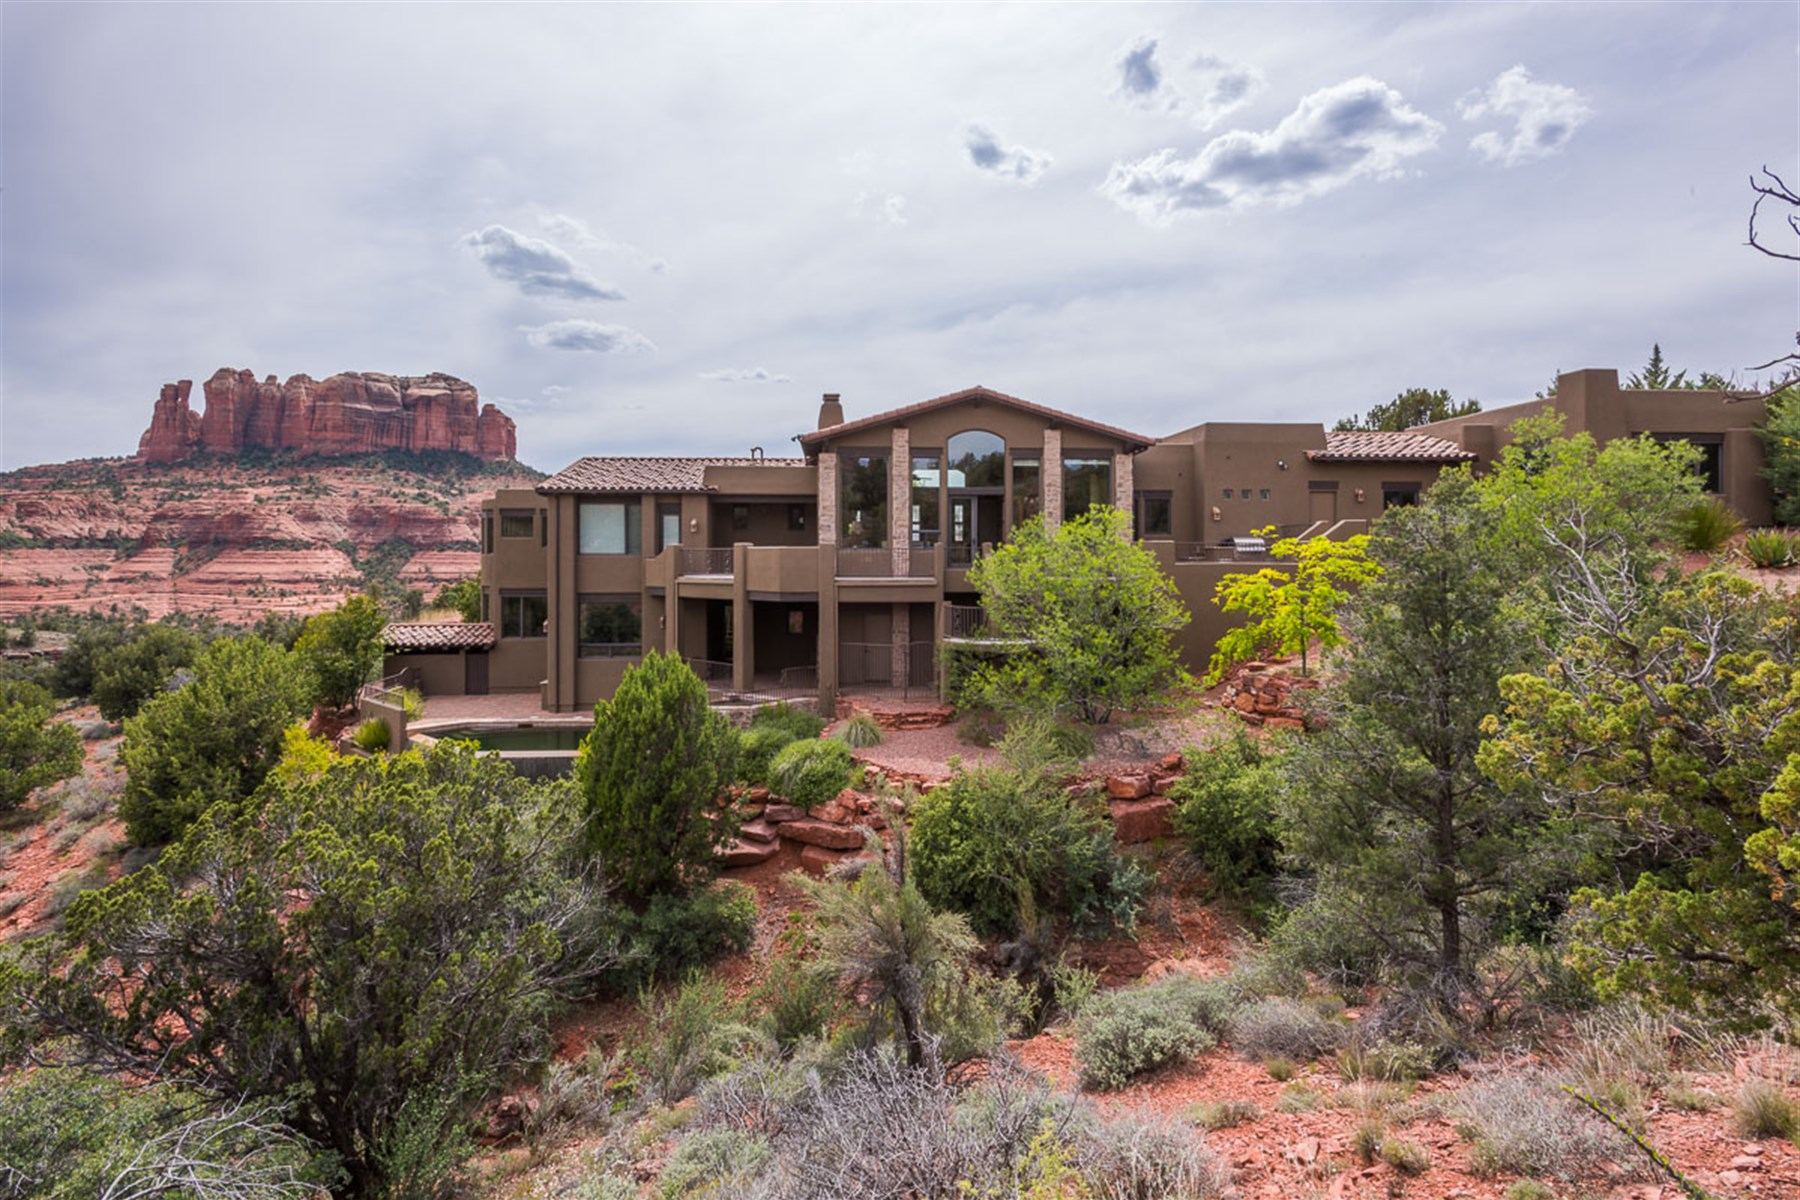 Casa Unifamiliar por un Venta en Sante Fe luxury home sits elevated in this magical environment of Back O' Beyond 15 ROSEMARY CT Sedona, Arizona, 86336 Estados Unidos